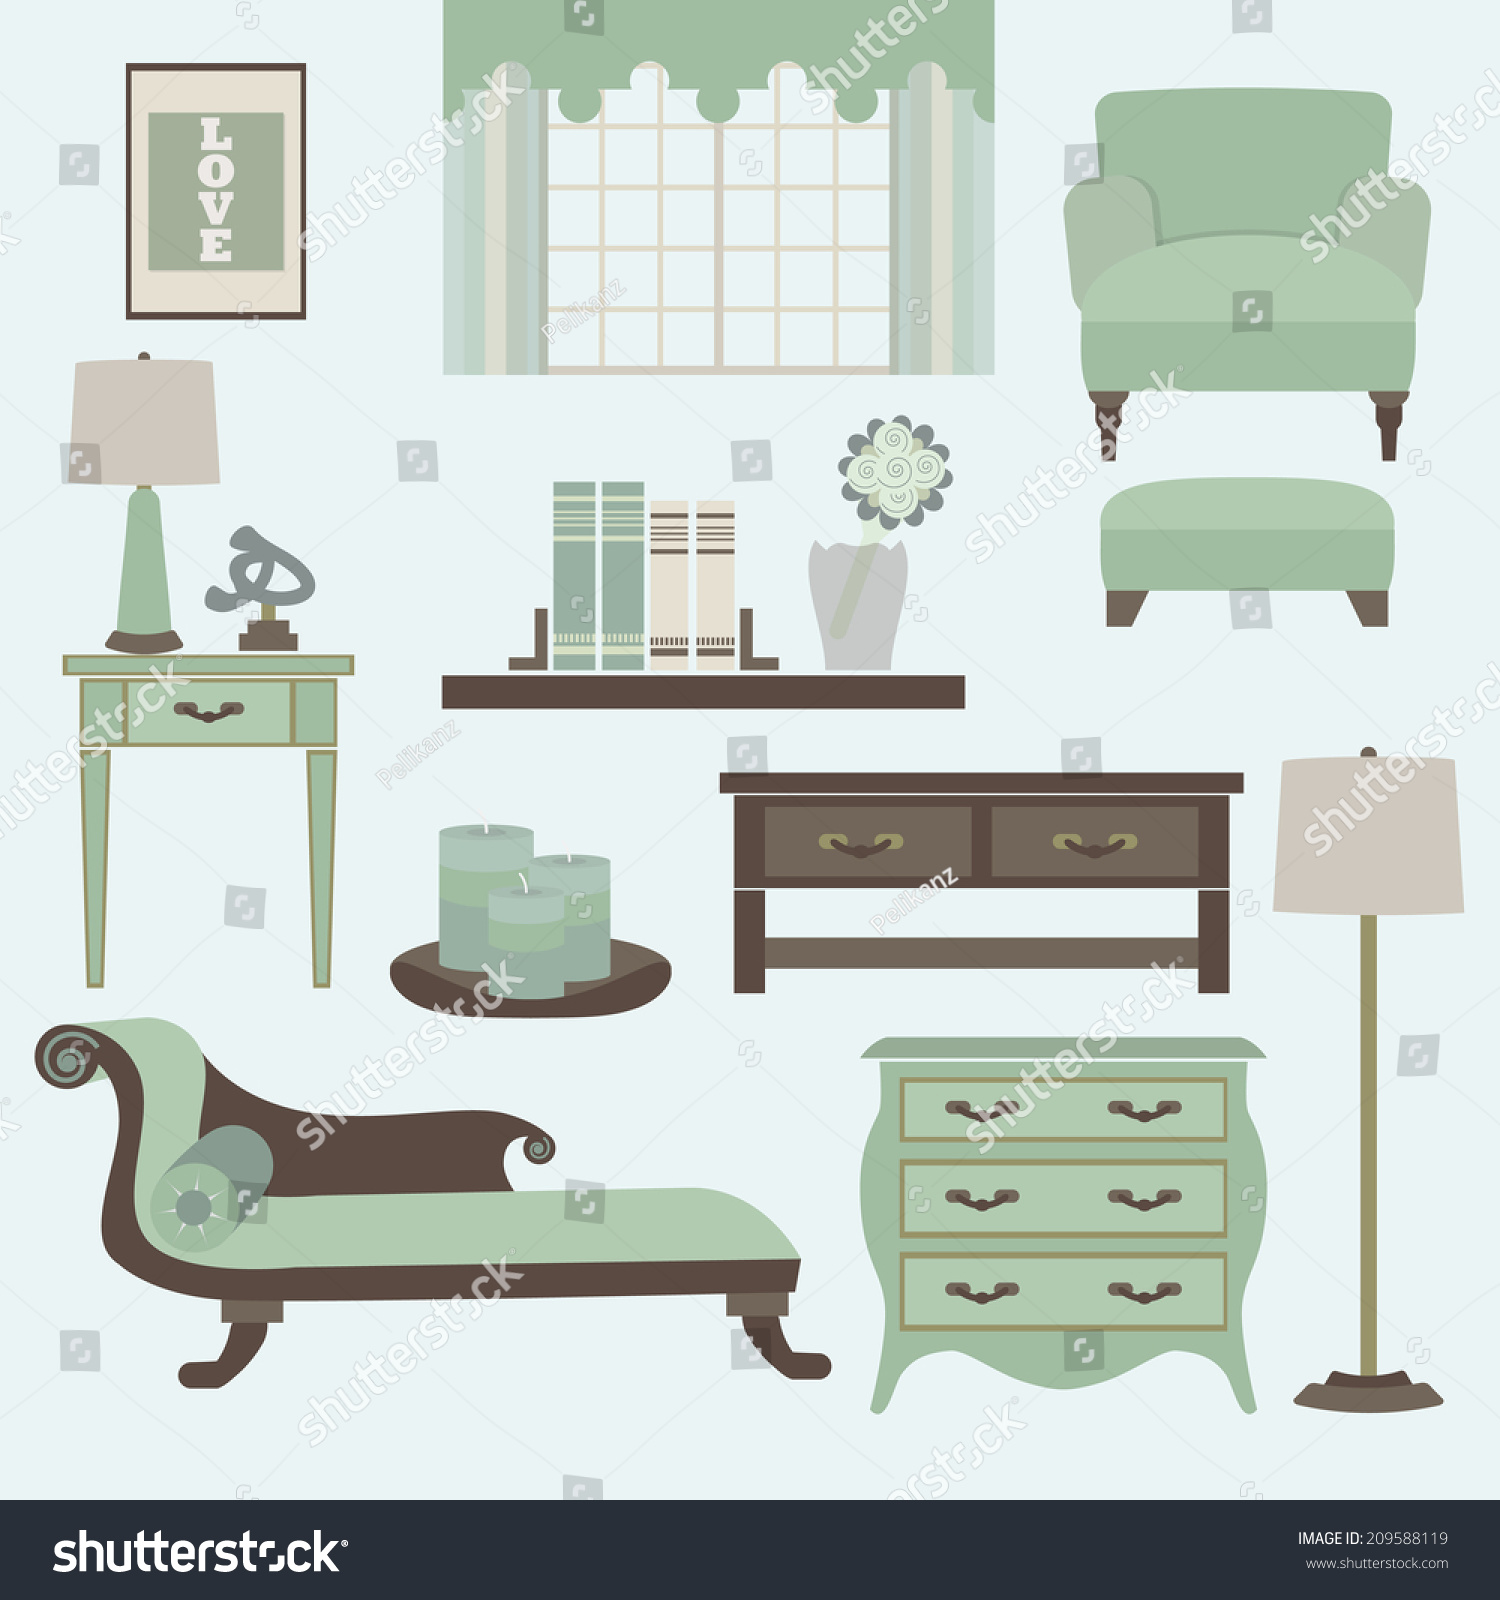 Living Room Furniture And Accessories In Color Teal  Arm Chair, Fainting  Couch, Coffee Good Ideas